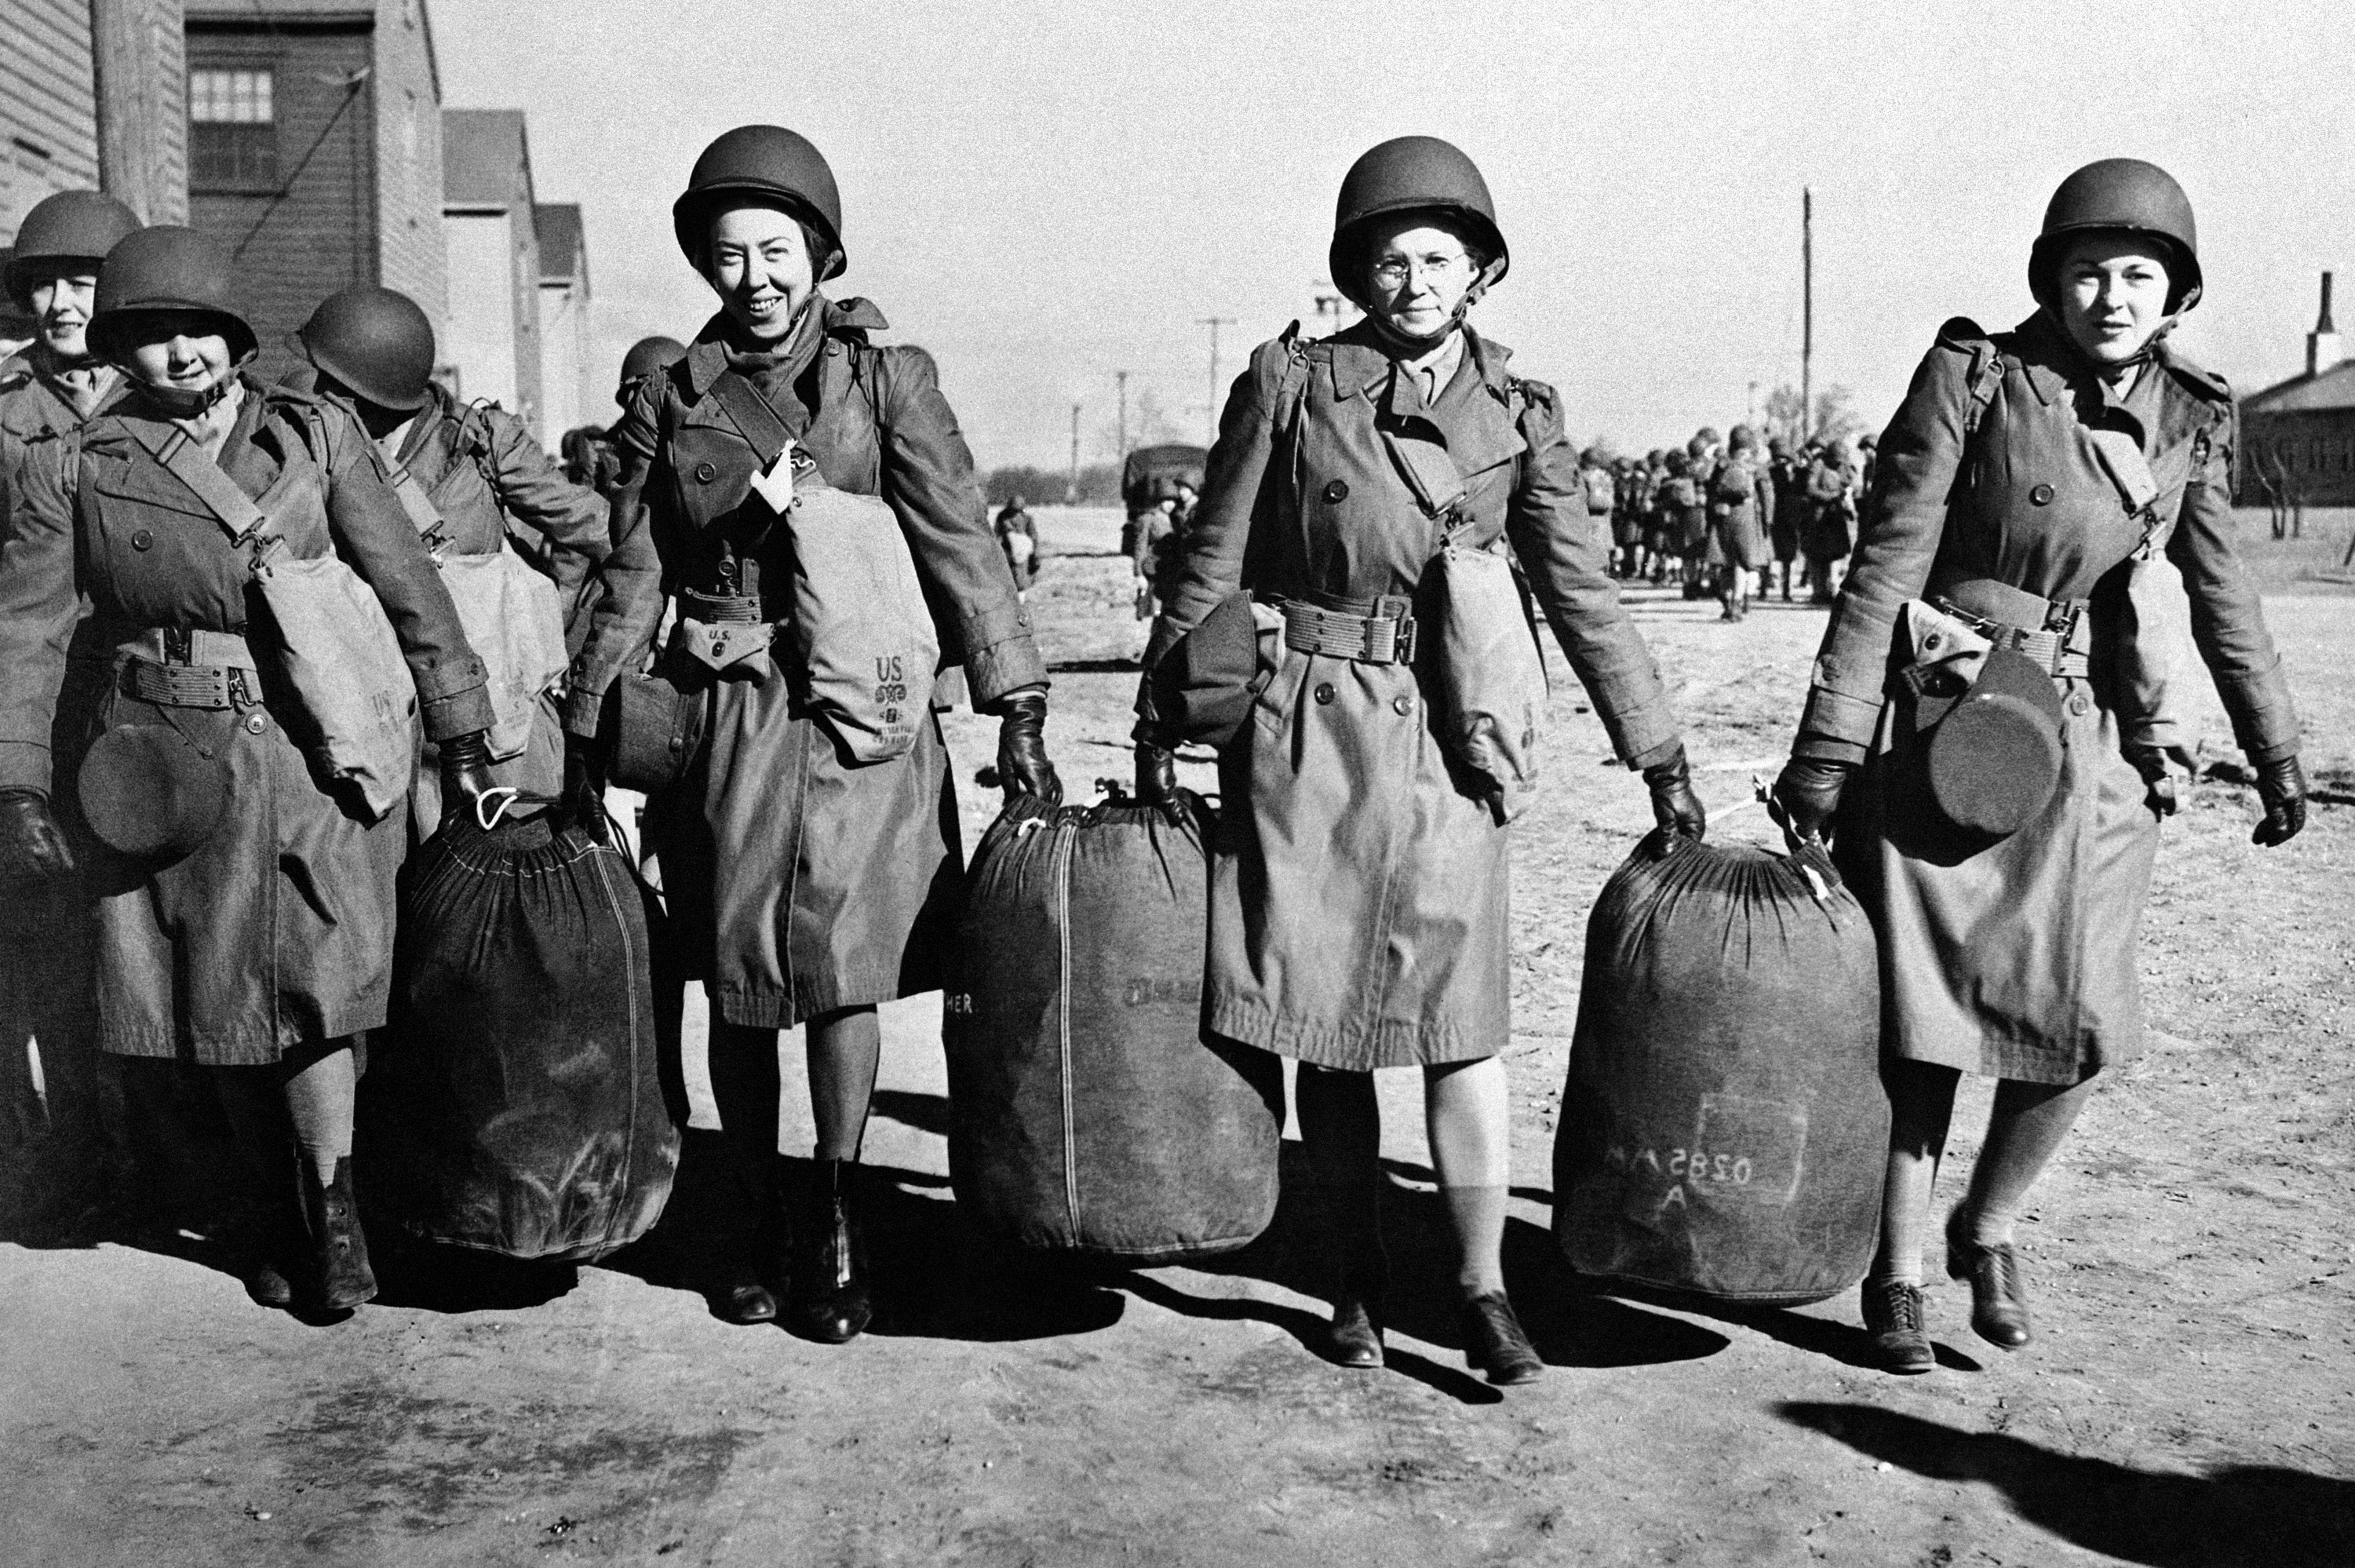 Women help each other with bags at an embarkation port in the U.S. in this Jan. 29, 1943, photo provided by the U.S. Army. They were bound for North Africa with the first detachment of the Women'�s Auxiliary Army Corps to be sent abroad.